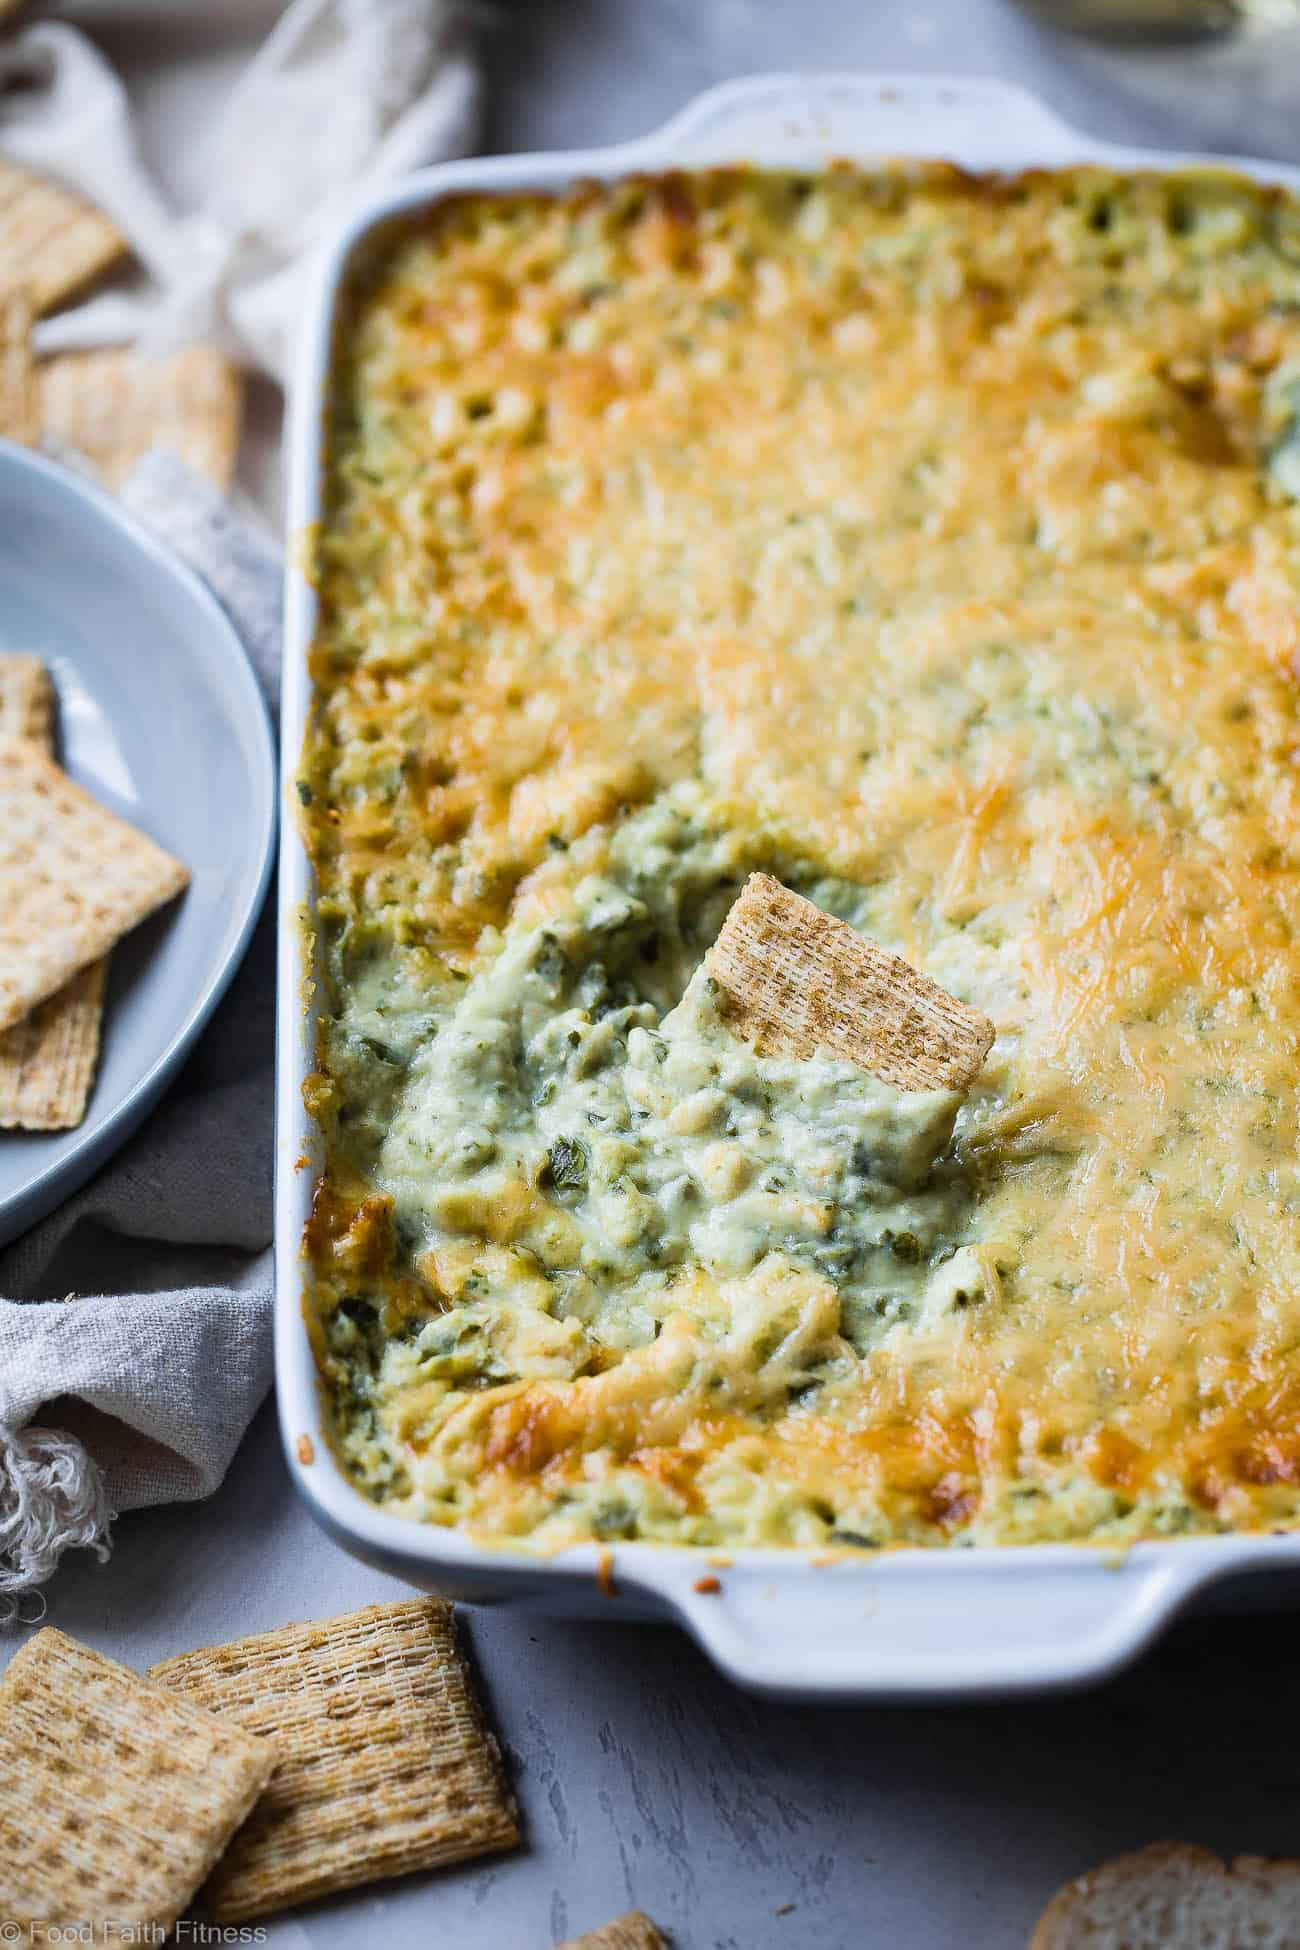 Easy Homemade Spinach Greek Yogurt Dip Recipe - This easy, cheesy, baked dip uses Greek yogurt to make it SUPER thick and creamy! It's low carb, protein packed and always a hit at parties! No one believes it's healthy! | Foodfaithfitness.com | @FoodFaithFit